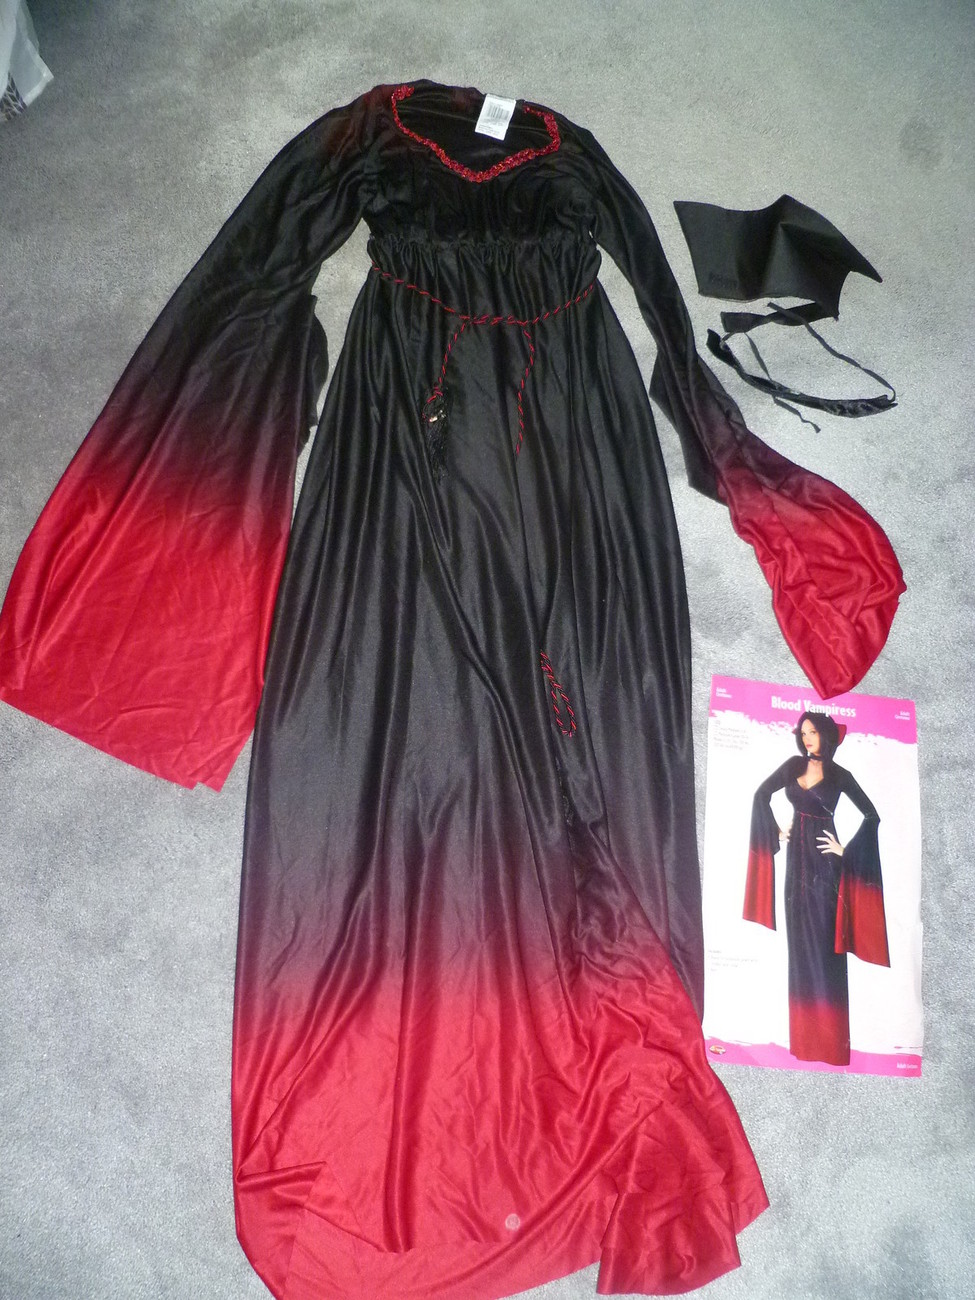 Primary image for ADULT BLOOD VAMPIRESS HALLOWEEN COSTUME SIZE 2 - 8